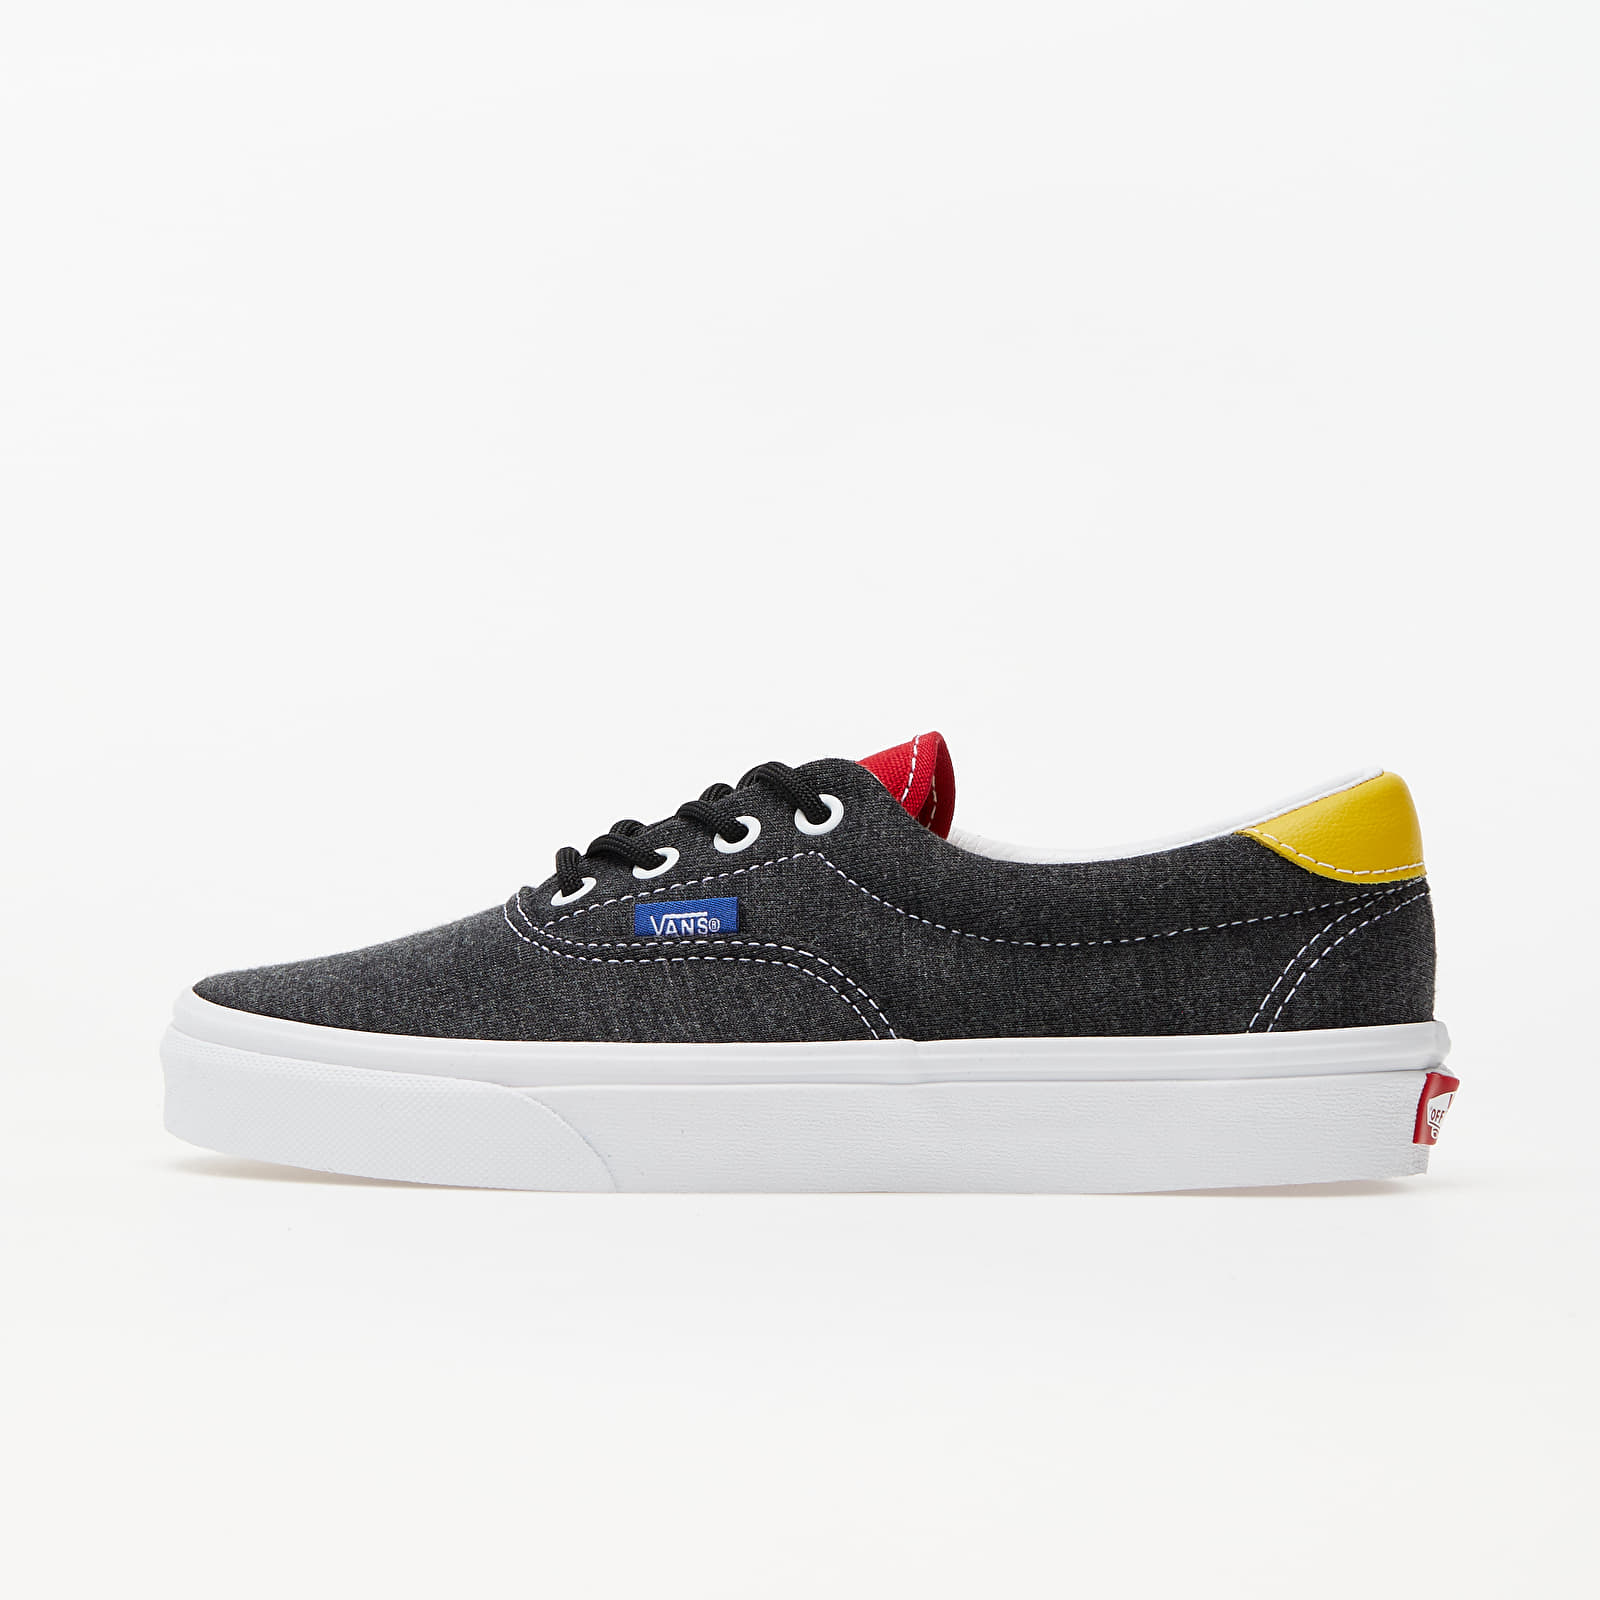 Vans Era 59 (Vans Coastal) Black/ True White